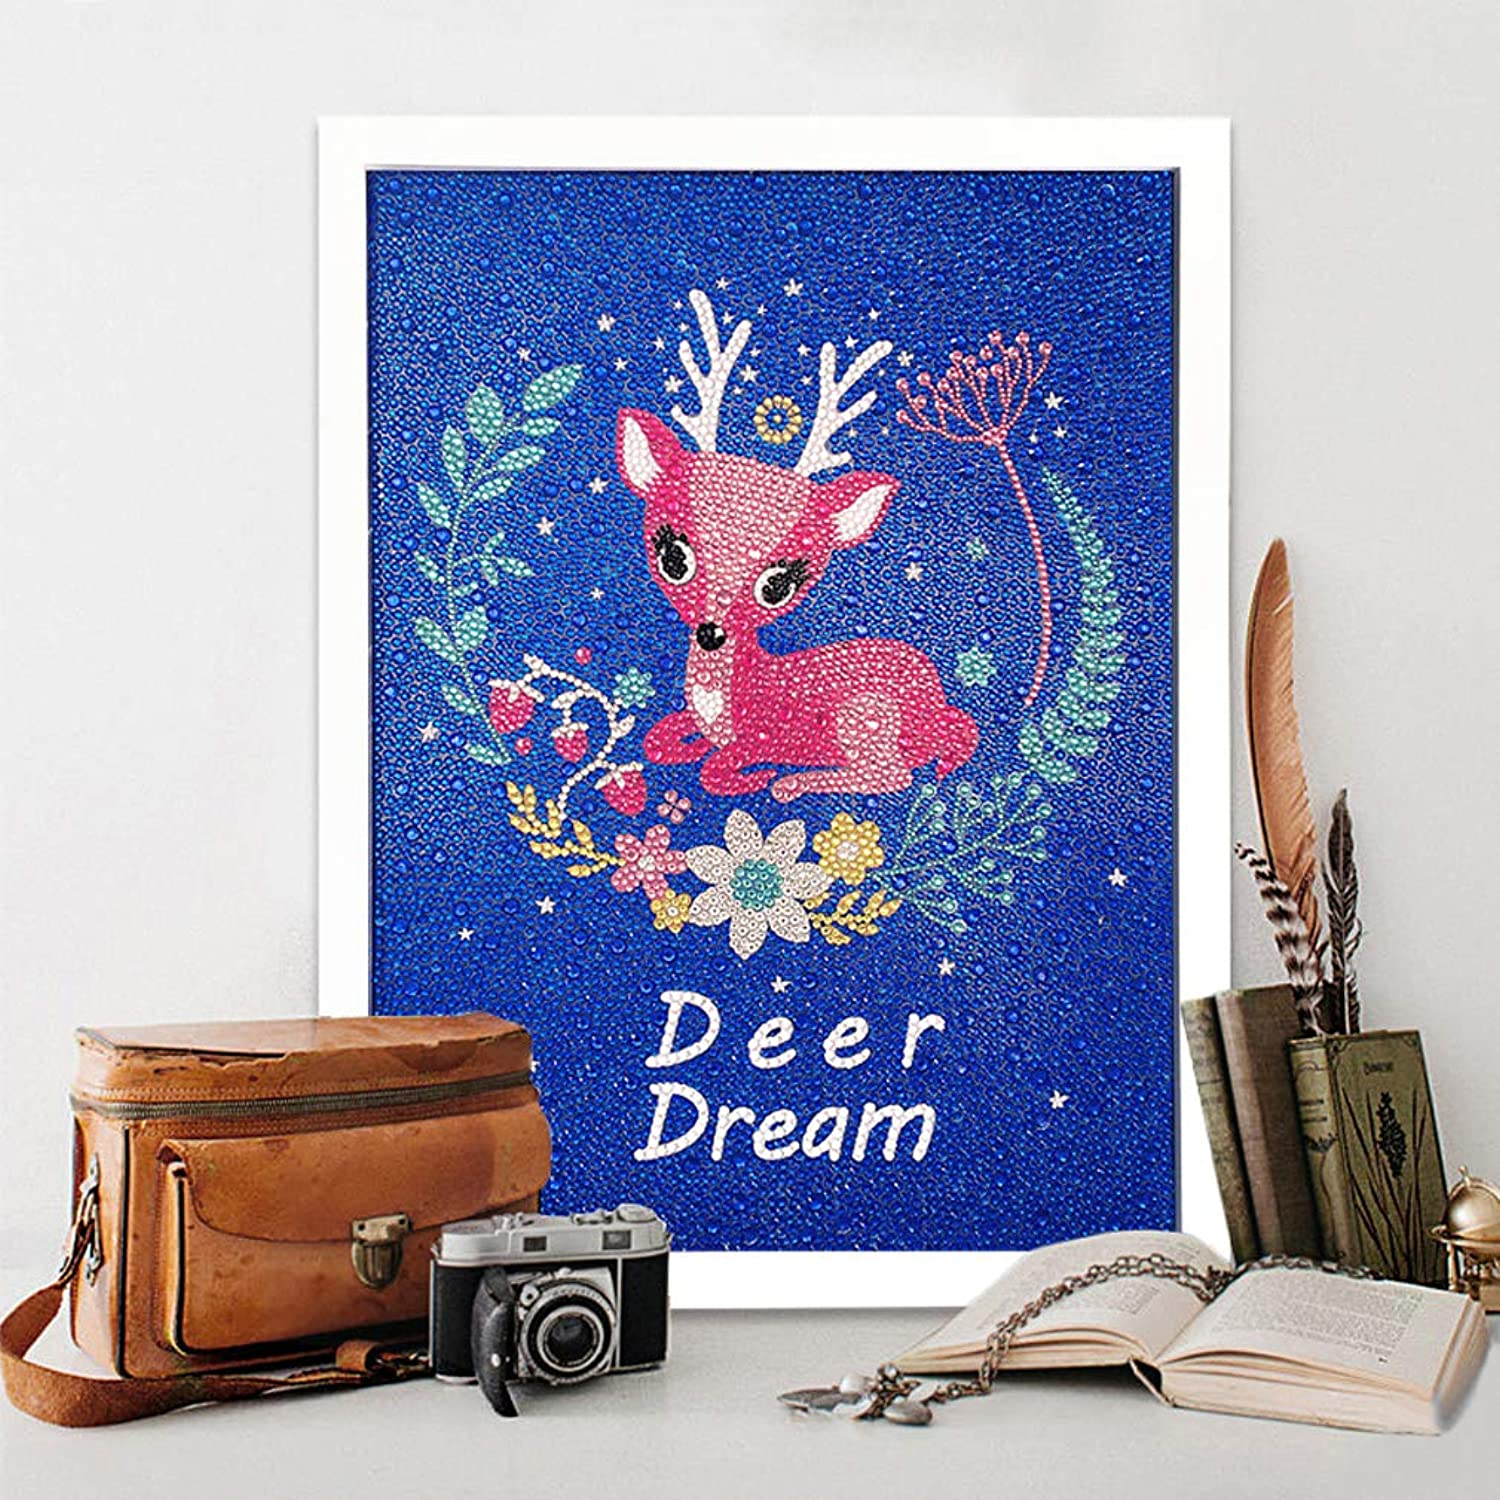 RM Studio DIY Diamond Painting Kits Full Round Drill Arts Craft with Frame and Accessories for Home Wall Decorations (Dream Deer, 16 inch)